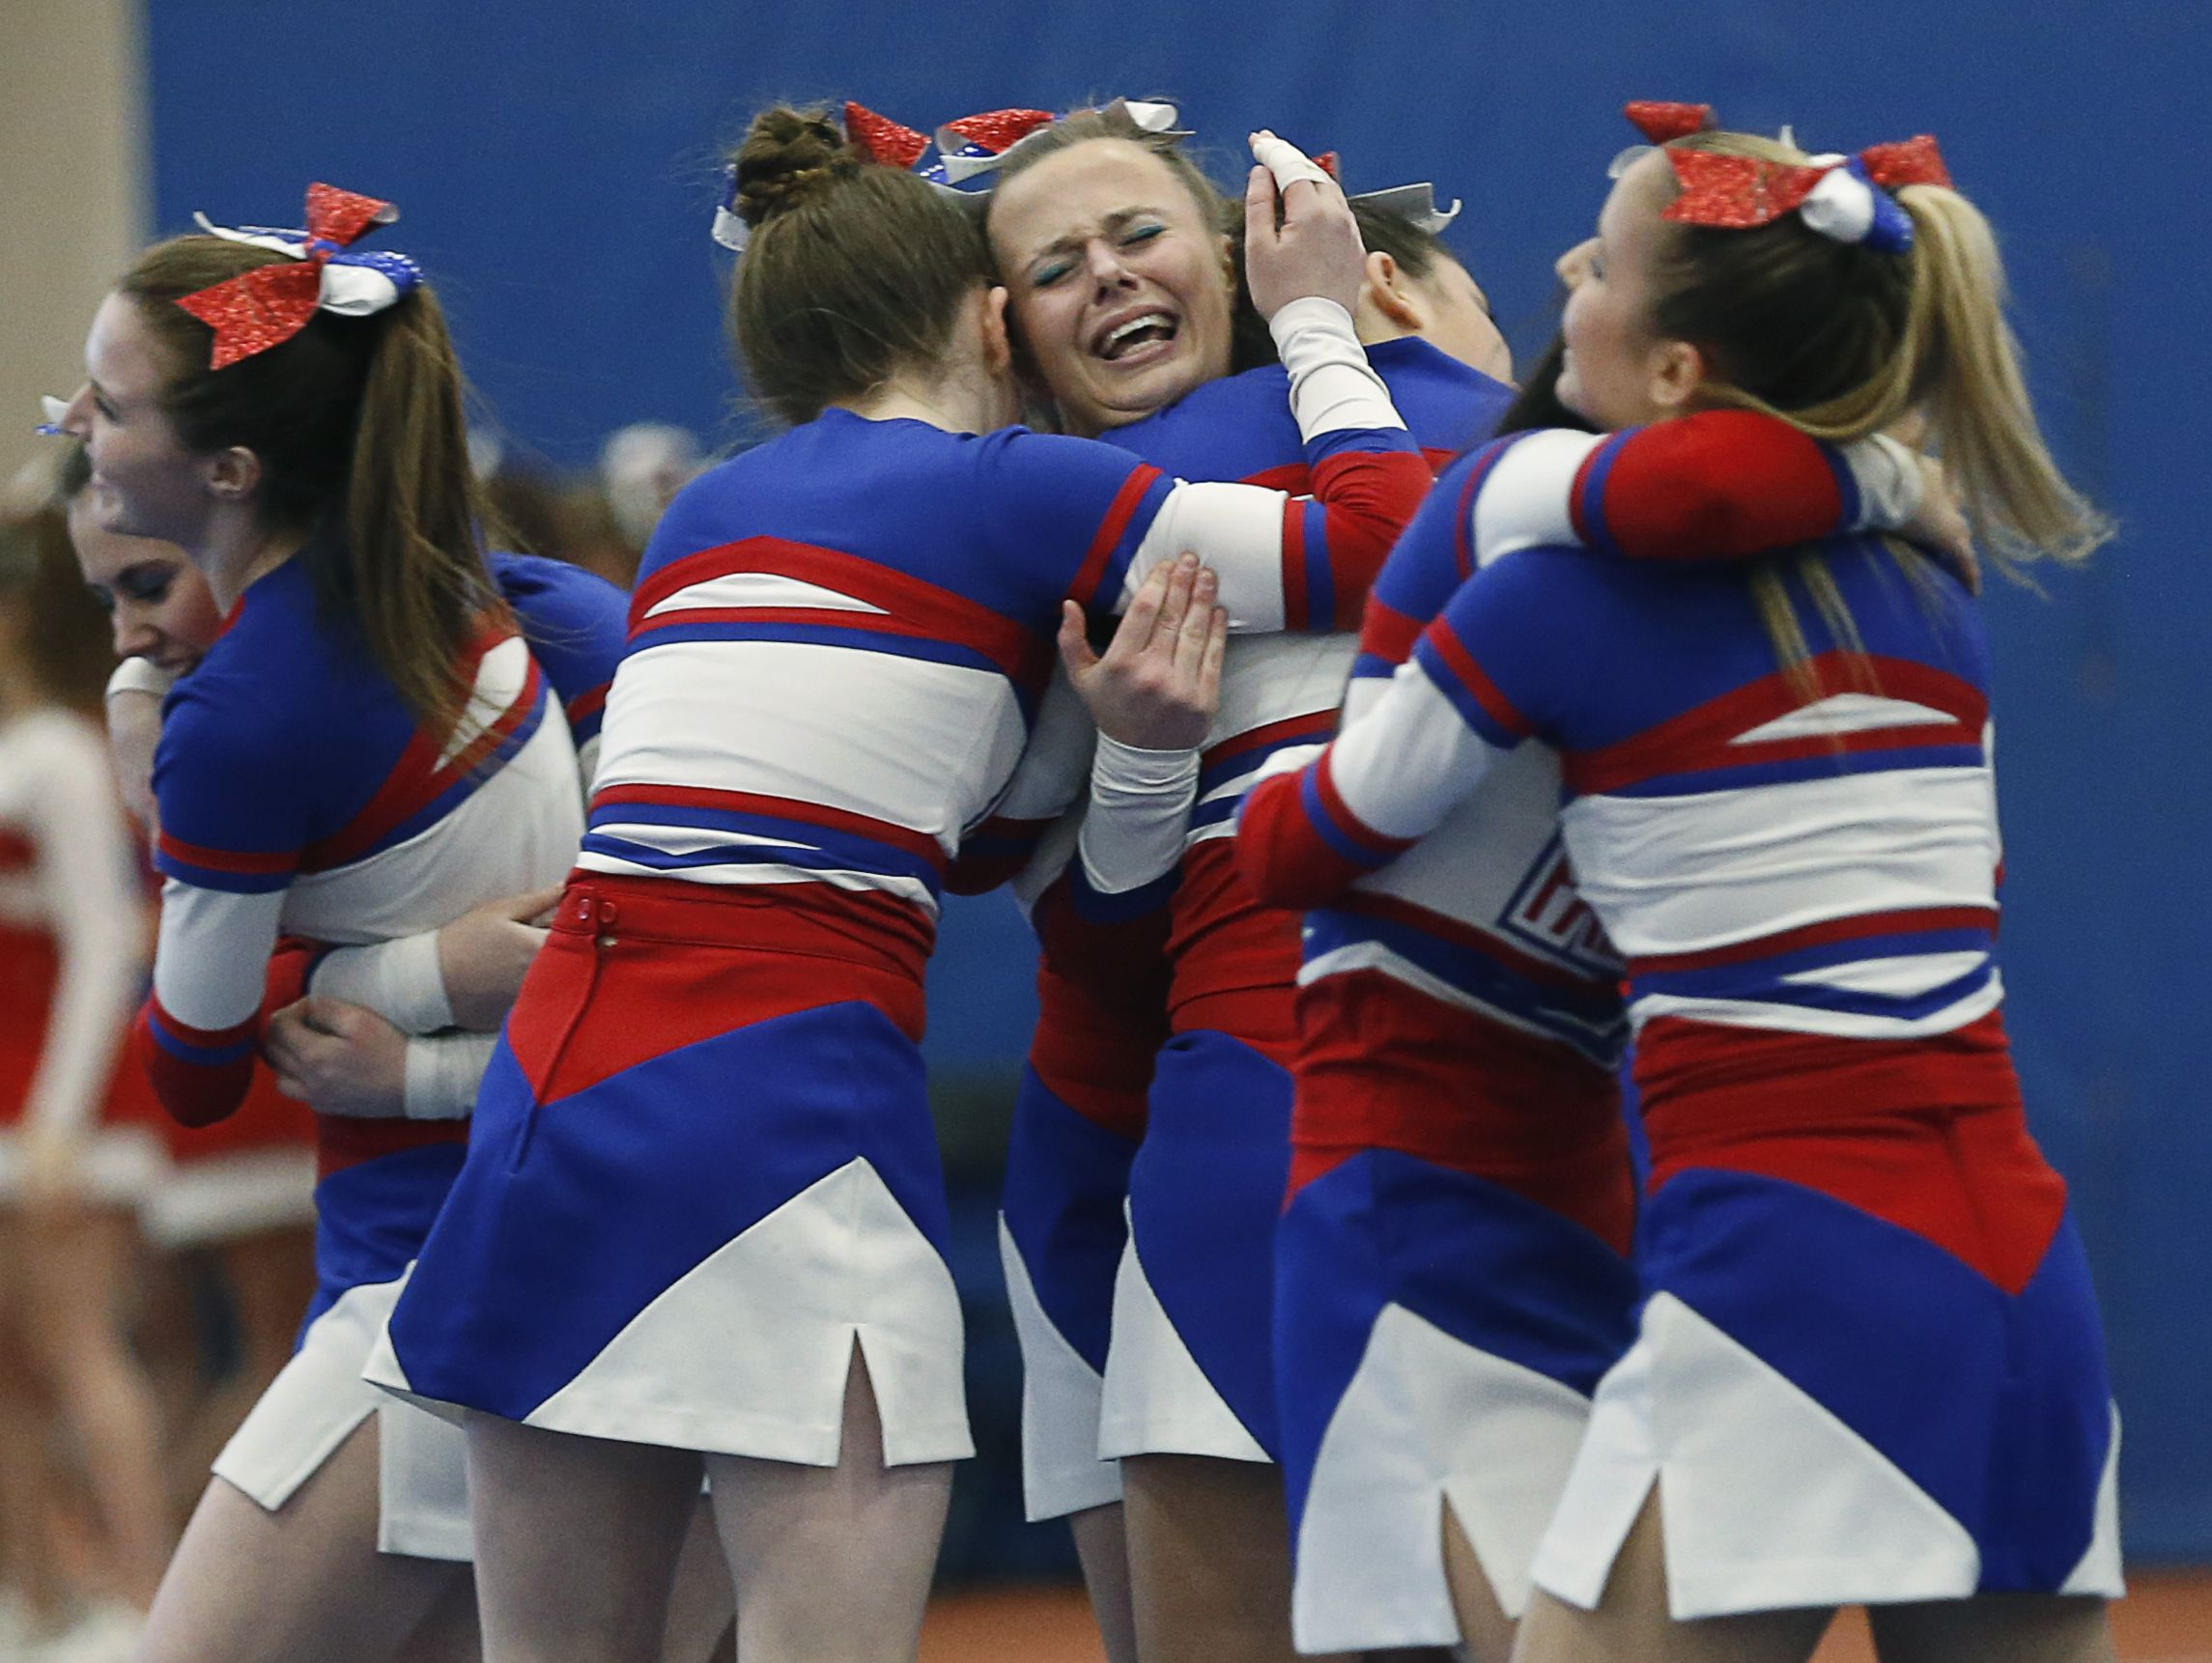 Fairport's Kaela Lush celebrates its Division 1-Large performance, which the Red Raiders won at the Section V High School Winter Cheerleading Championships at RIT on Feb. 27, 2019.